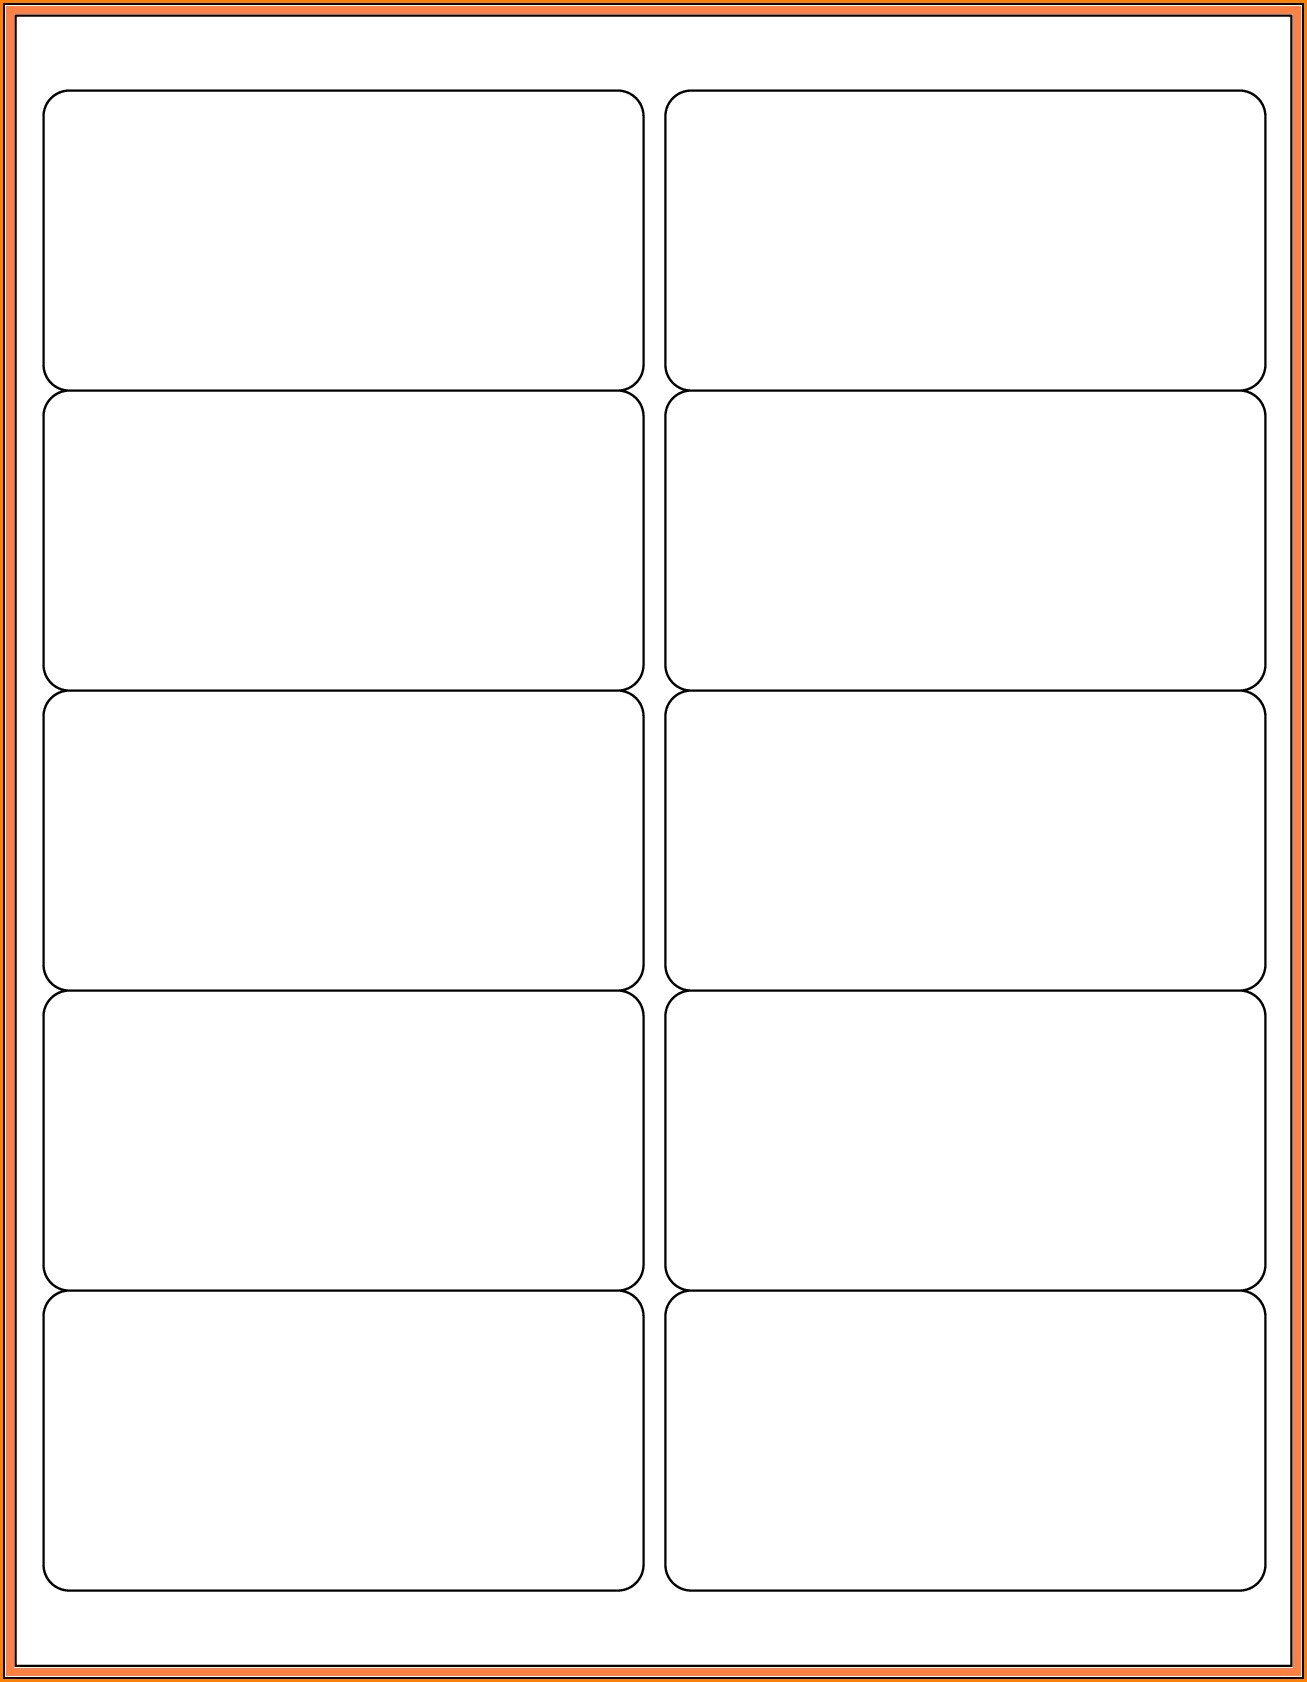 2x4 Label Template Pdf